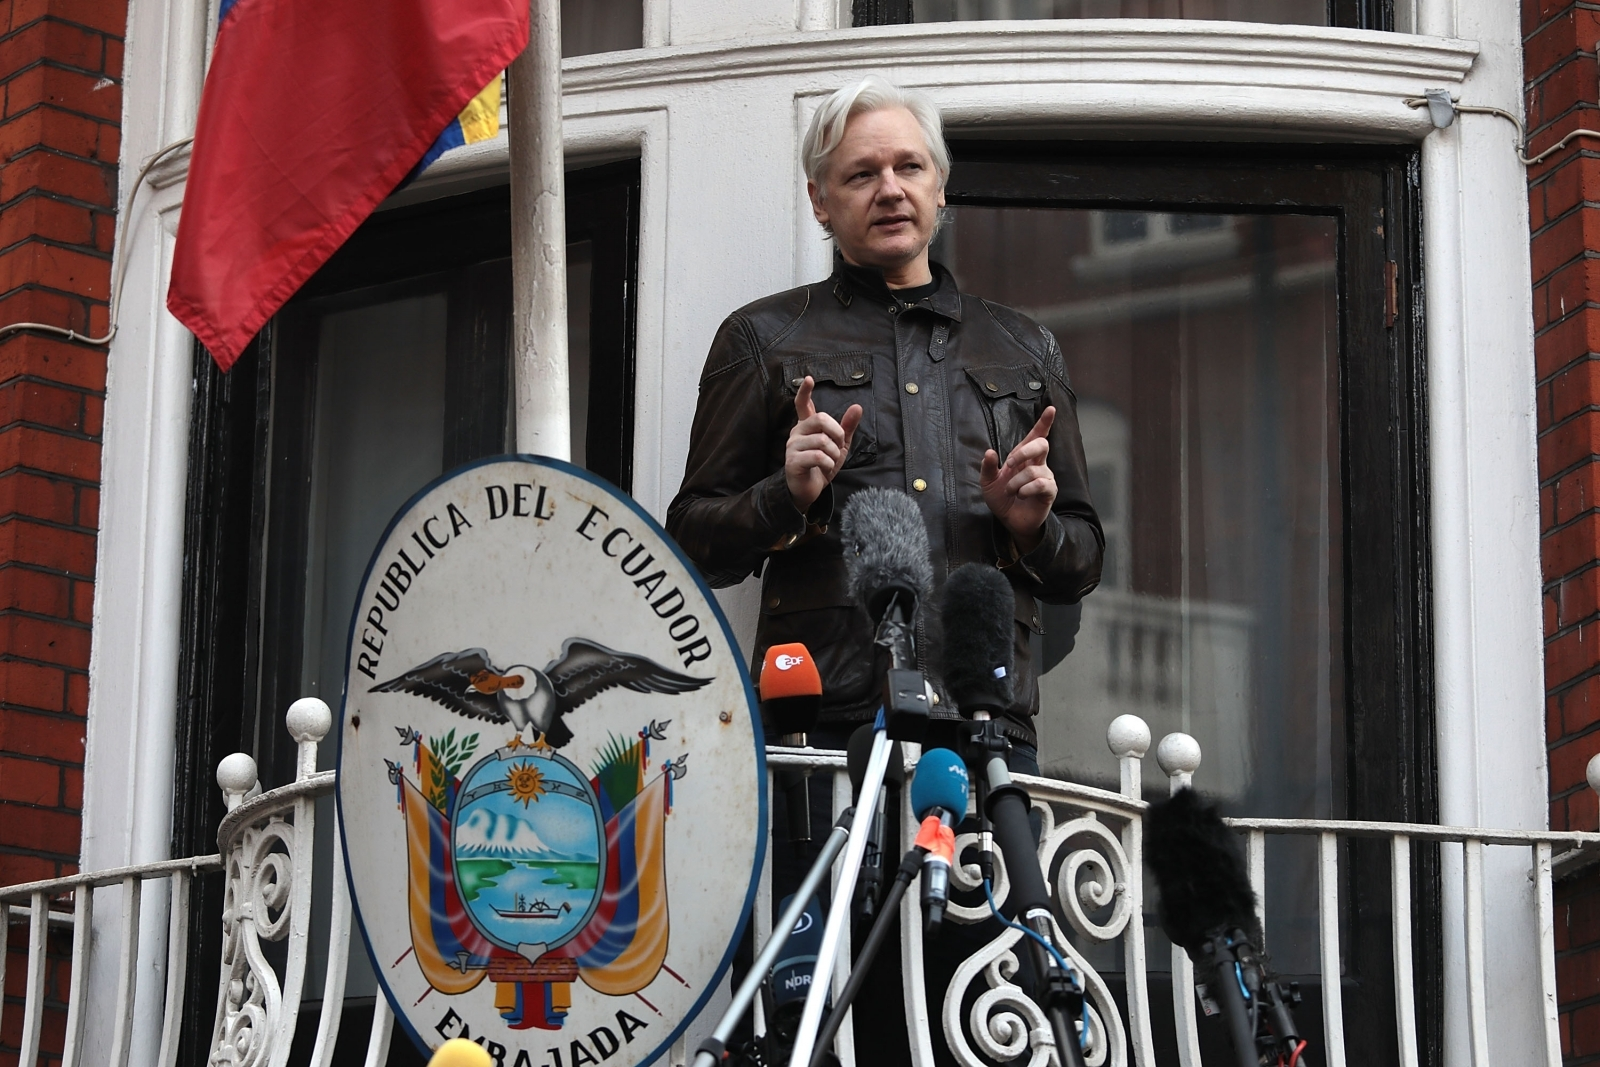 Rohrabacher Claims Meeting To Discuss Assange With Trump Is 'Being Arranged'